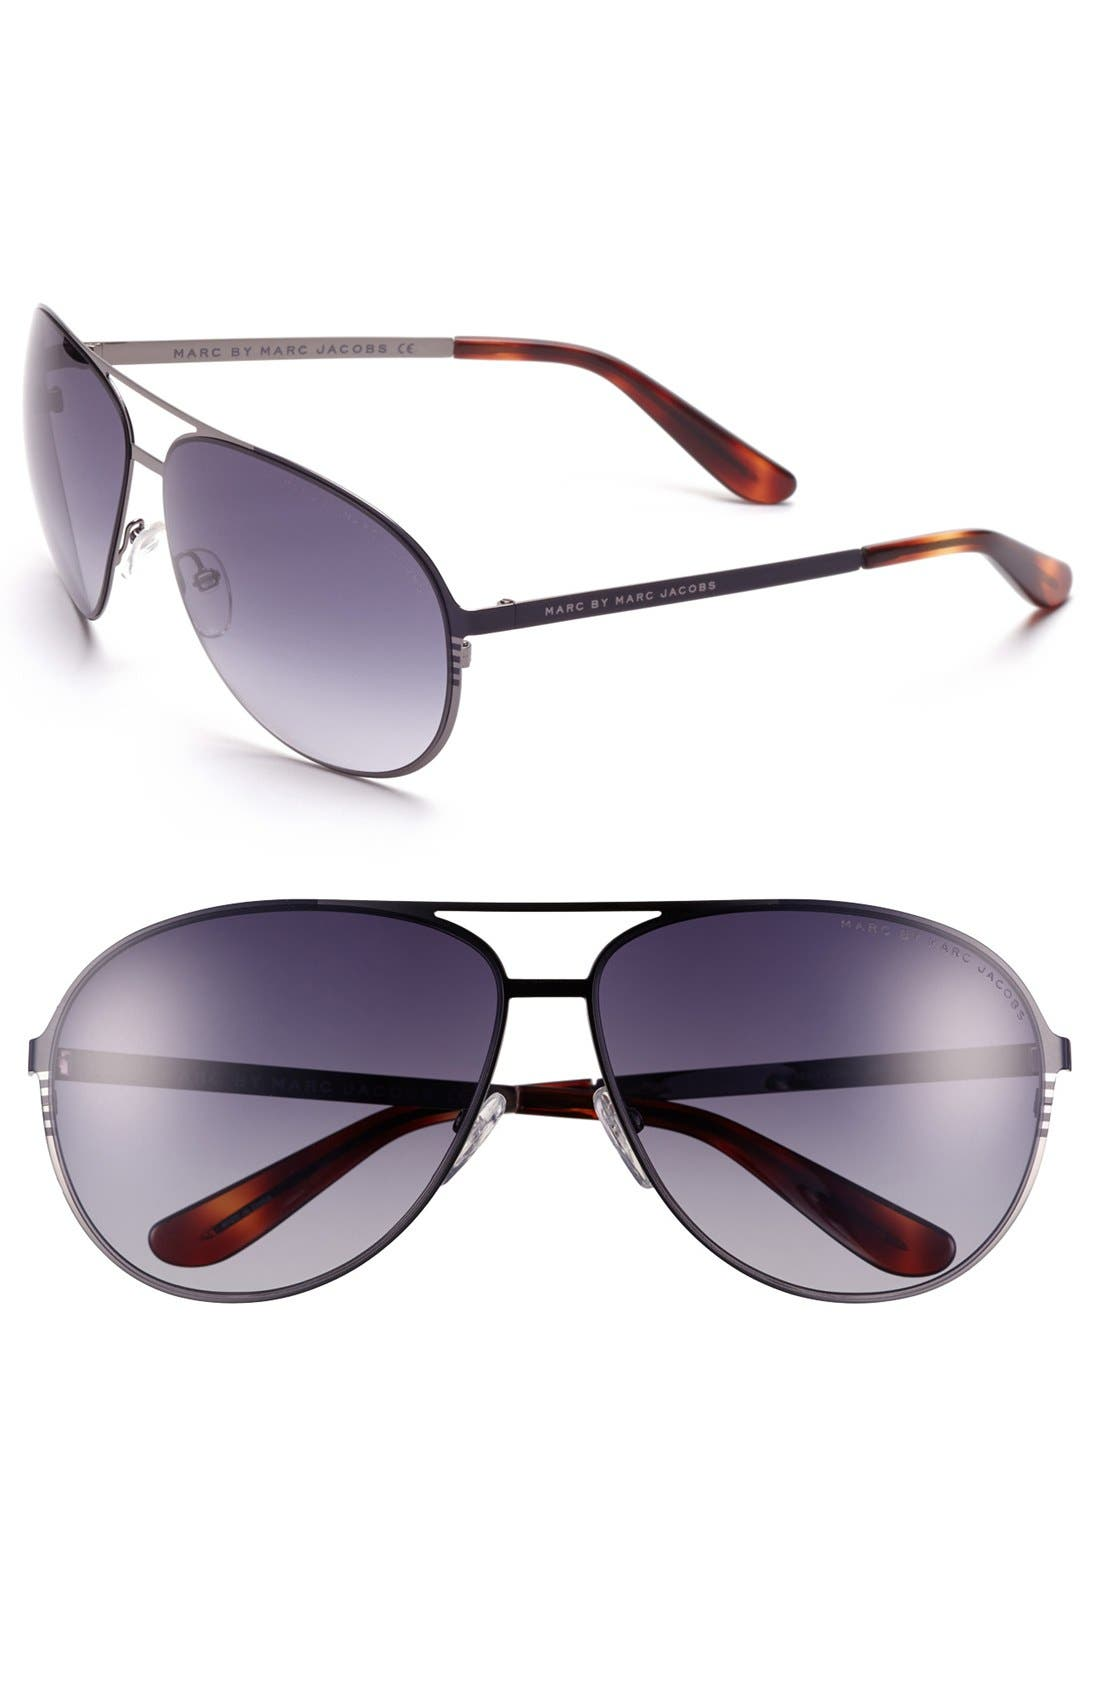 Alternate Image 1 Selected - MARC BY MARC JACOBS 58mm Aviator Sunglasses